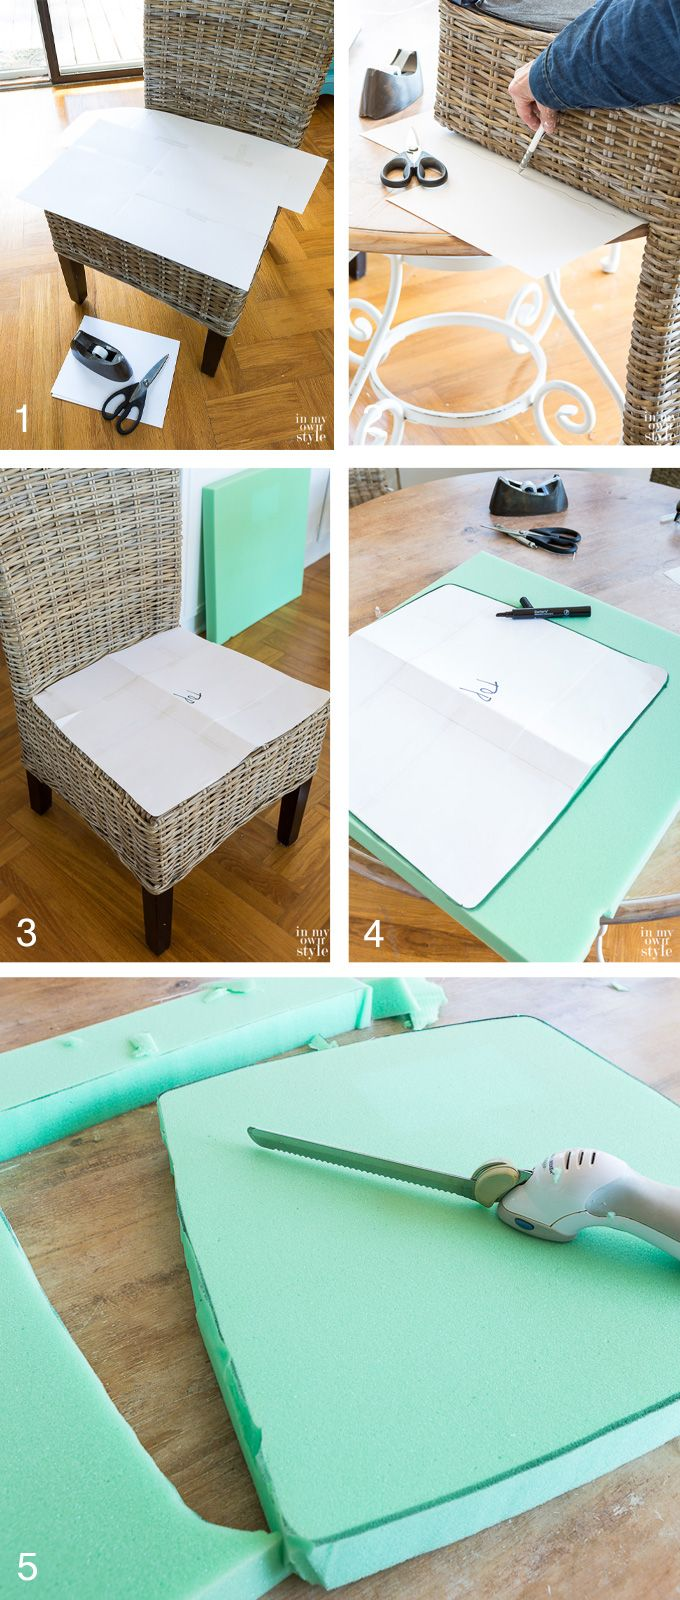 Diy Chair Cushions For My Kitchen In My Own Style Custom Chair